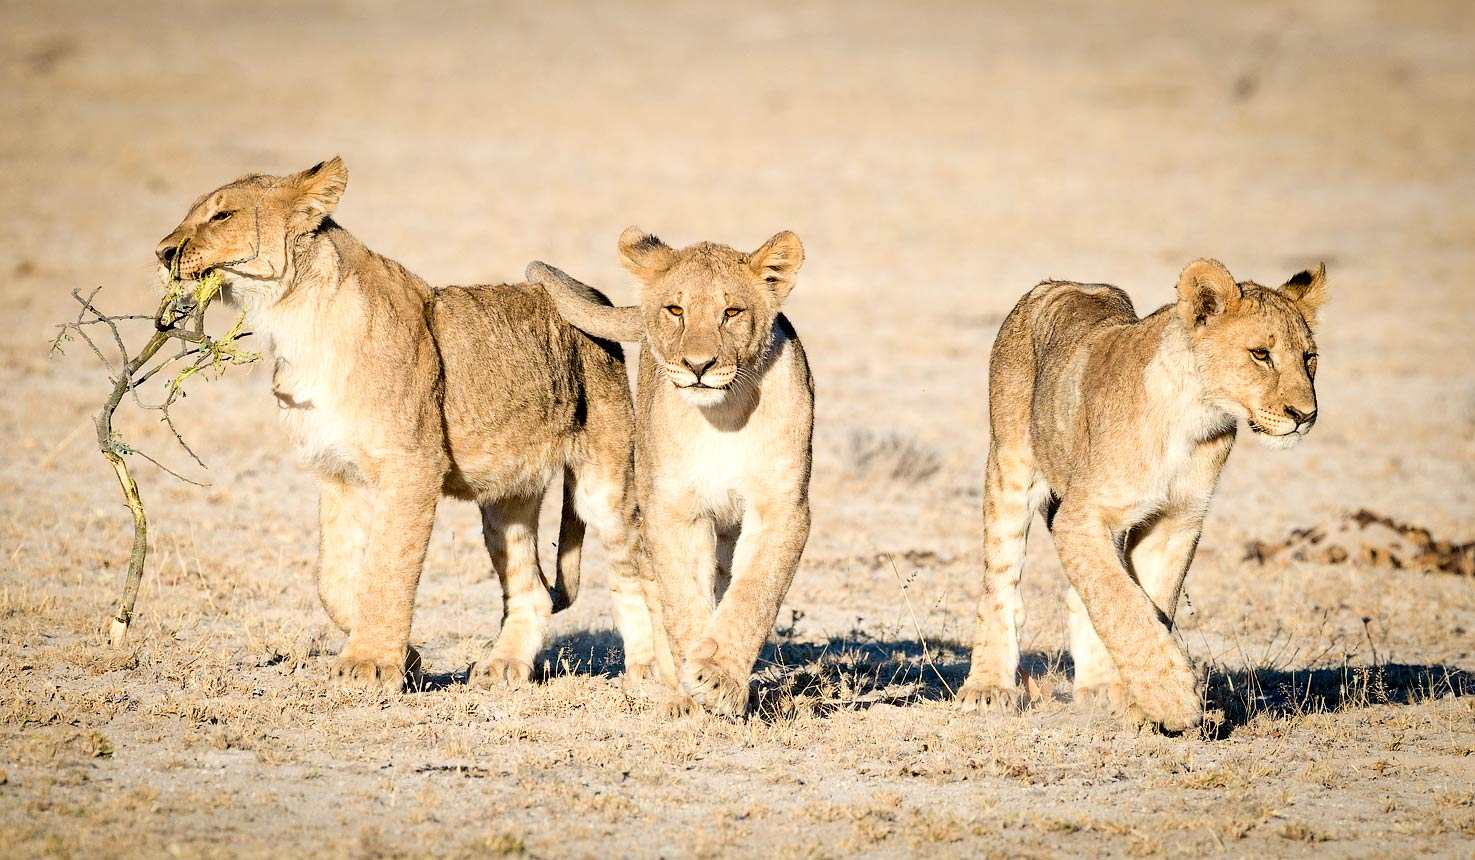 Safari to Lions with Africa Travel Resource